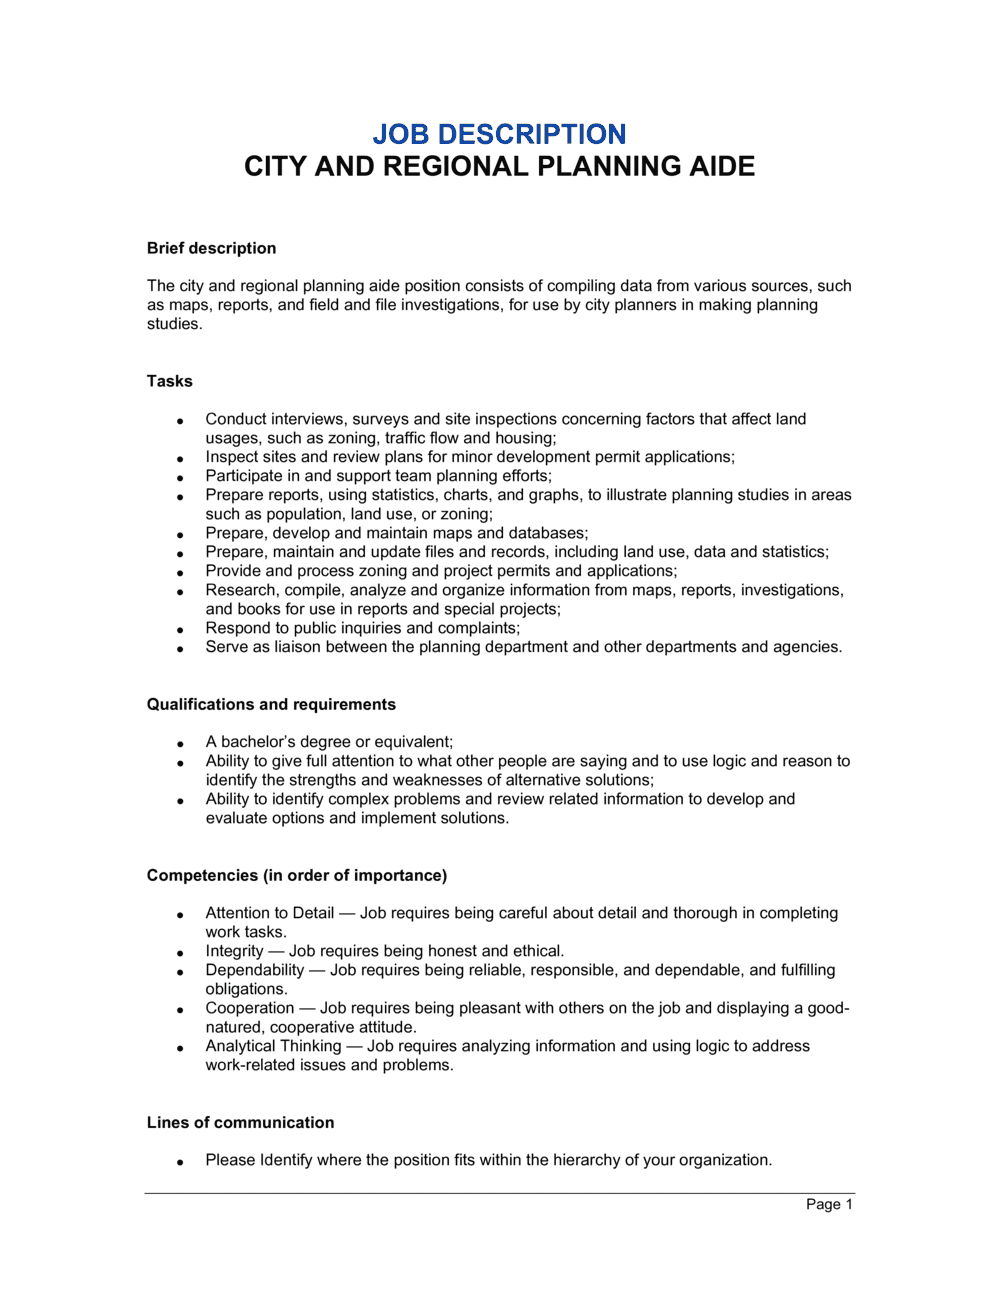 Business-in-a-Box's City and Regional Planning Aide Job Description Template